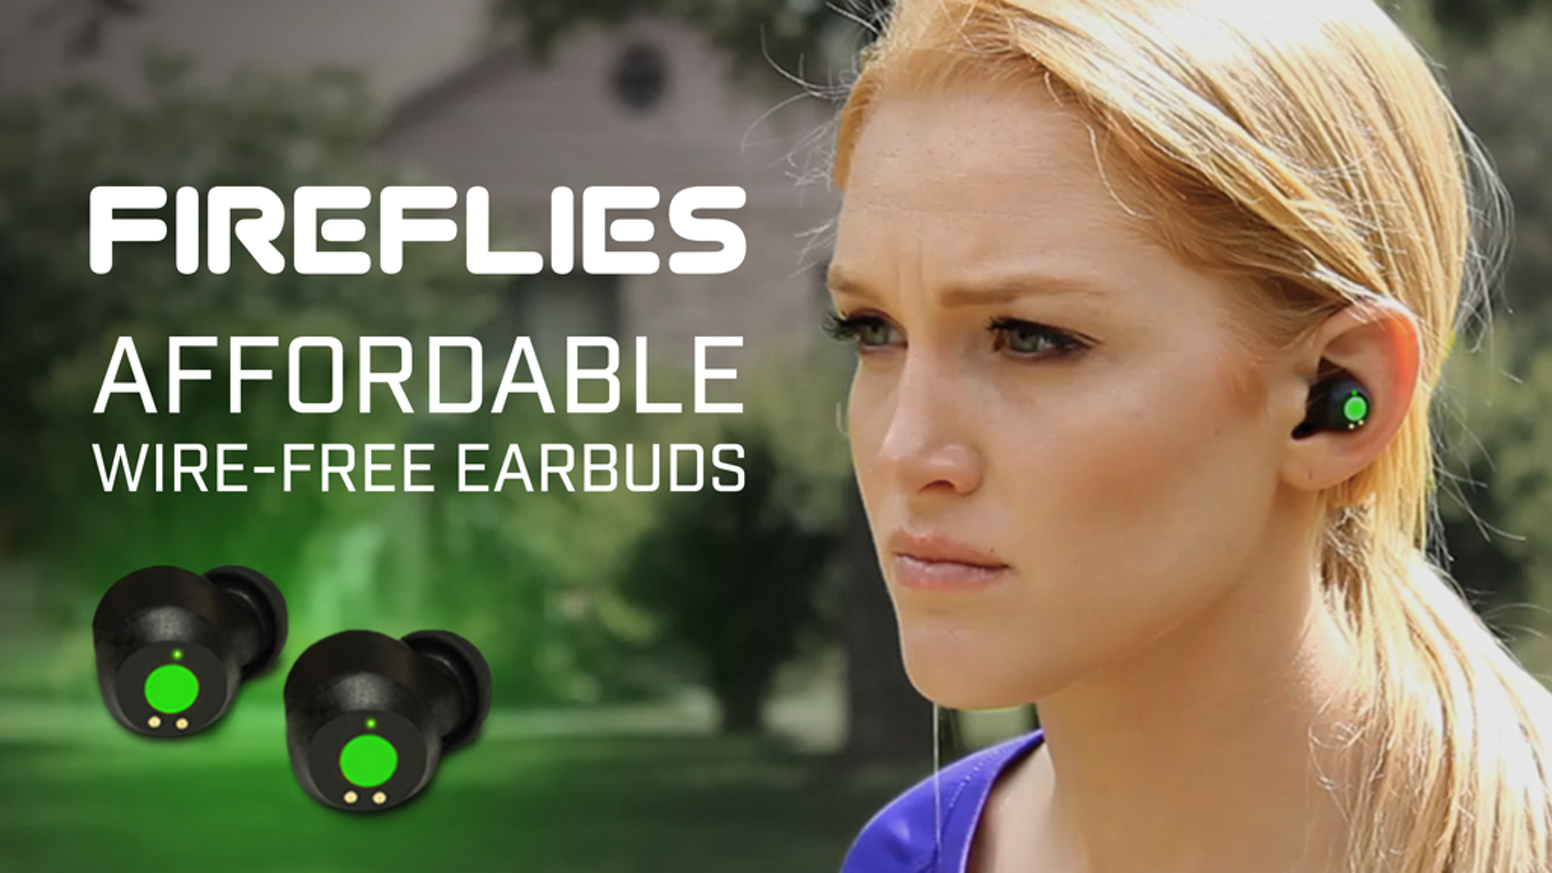 High quality truly wireless earbuds, without the high price! Experience 100% wire-free, stereo audio for hours with these tiny earbuds!